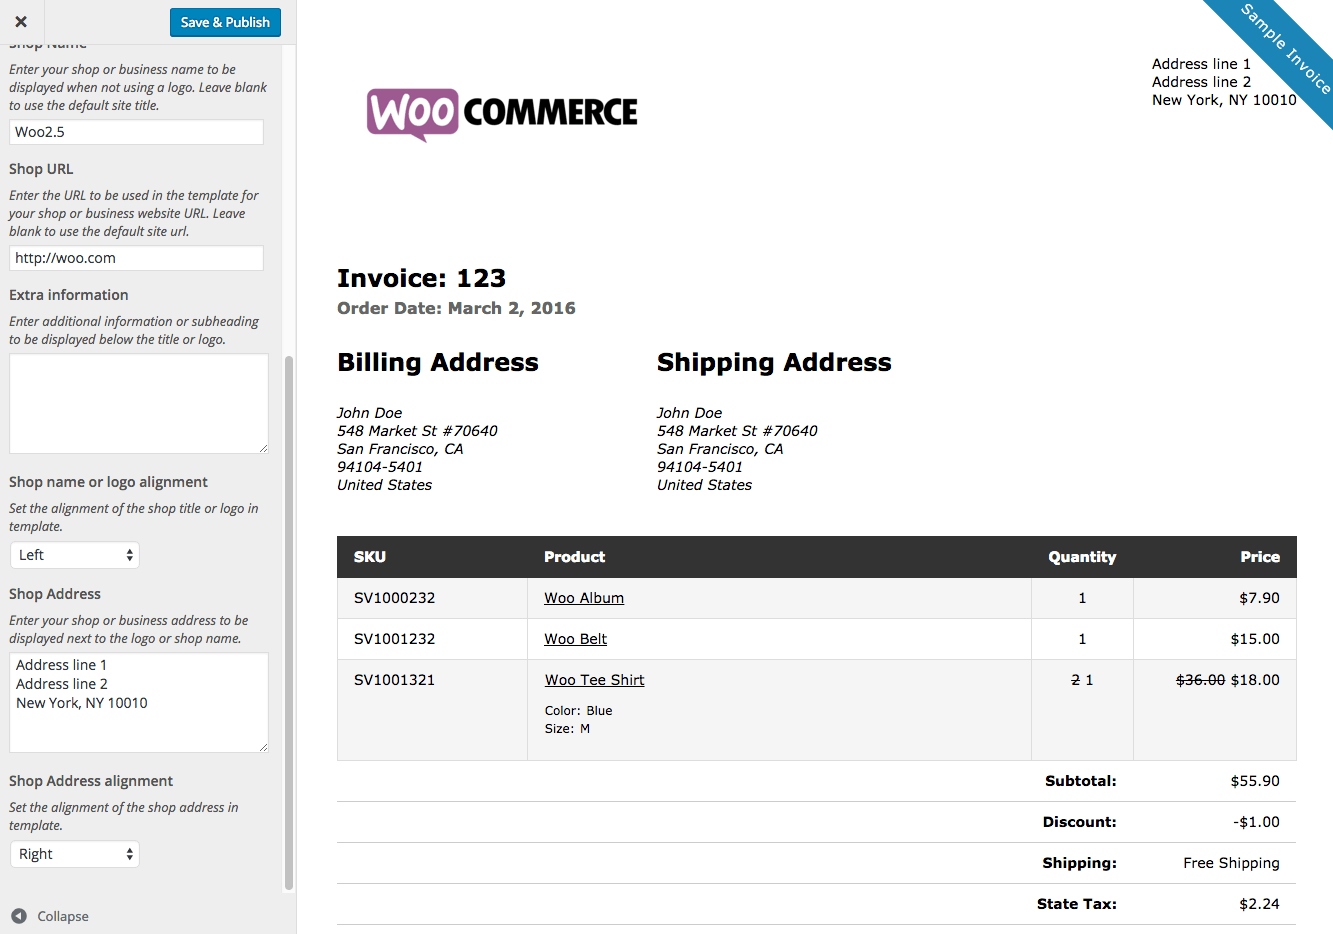 Soulfulpowerus  Splendid Woocommerce Print Invoices Amp Packing Lists  Woocommerce Docs With Great Woocommerce Print Invoices  Packing Lists Customizer With Extraordinary Einvoicing Software Also Invoice Receipts In Addition Invoice Terms Net  And Billing Vs Invoicing As Well As Intuit Invoicing Additionally Business Invoices Templates From Docswoocommercecom With Soulfulpowerus  Great Woocommerce Print Invoices Amp Packing Lists  Woocommerce Docs With Extraordinary Woocommerce Print Invoices  Packing Lists Customizer And Splendid Einvoicing Software Also Invoice Receipts In Addition Invoice Terms Net  From Docswoocommercecom